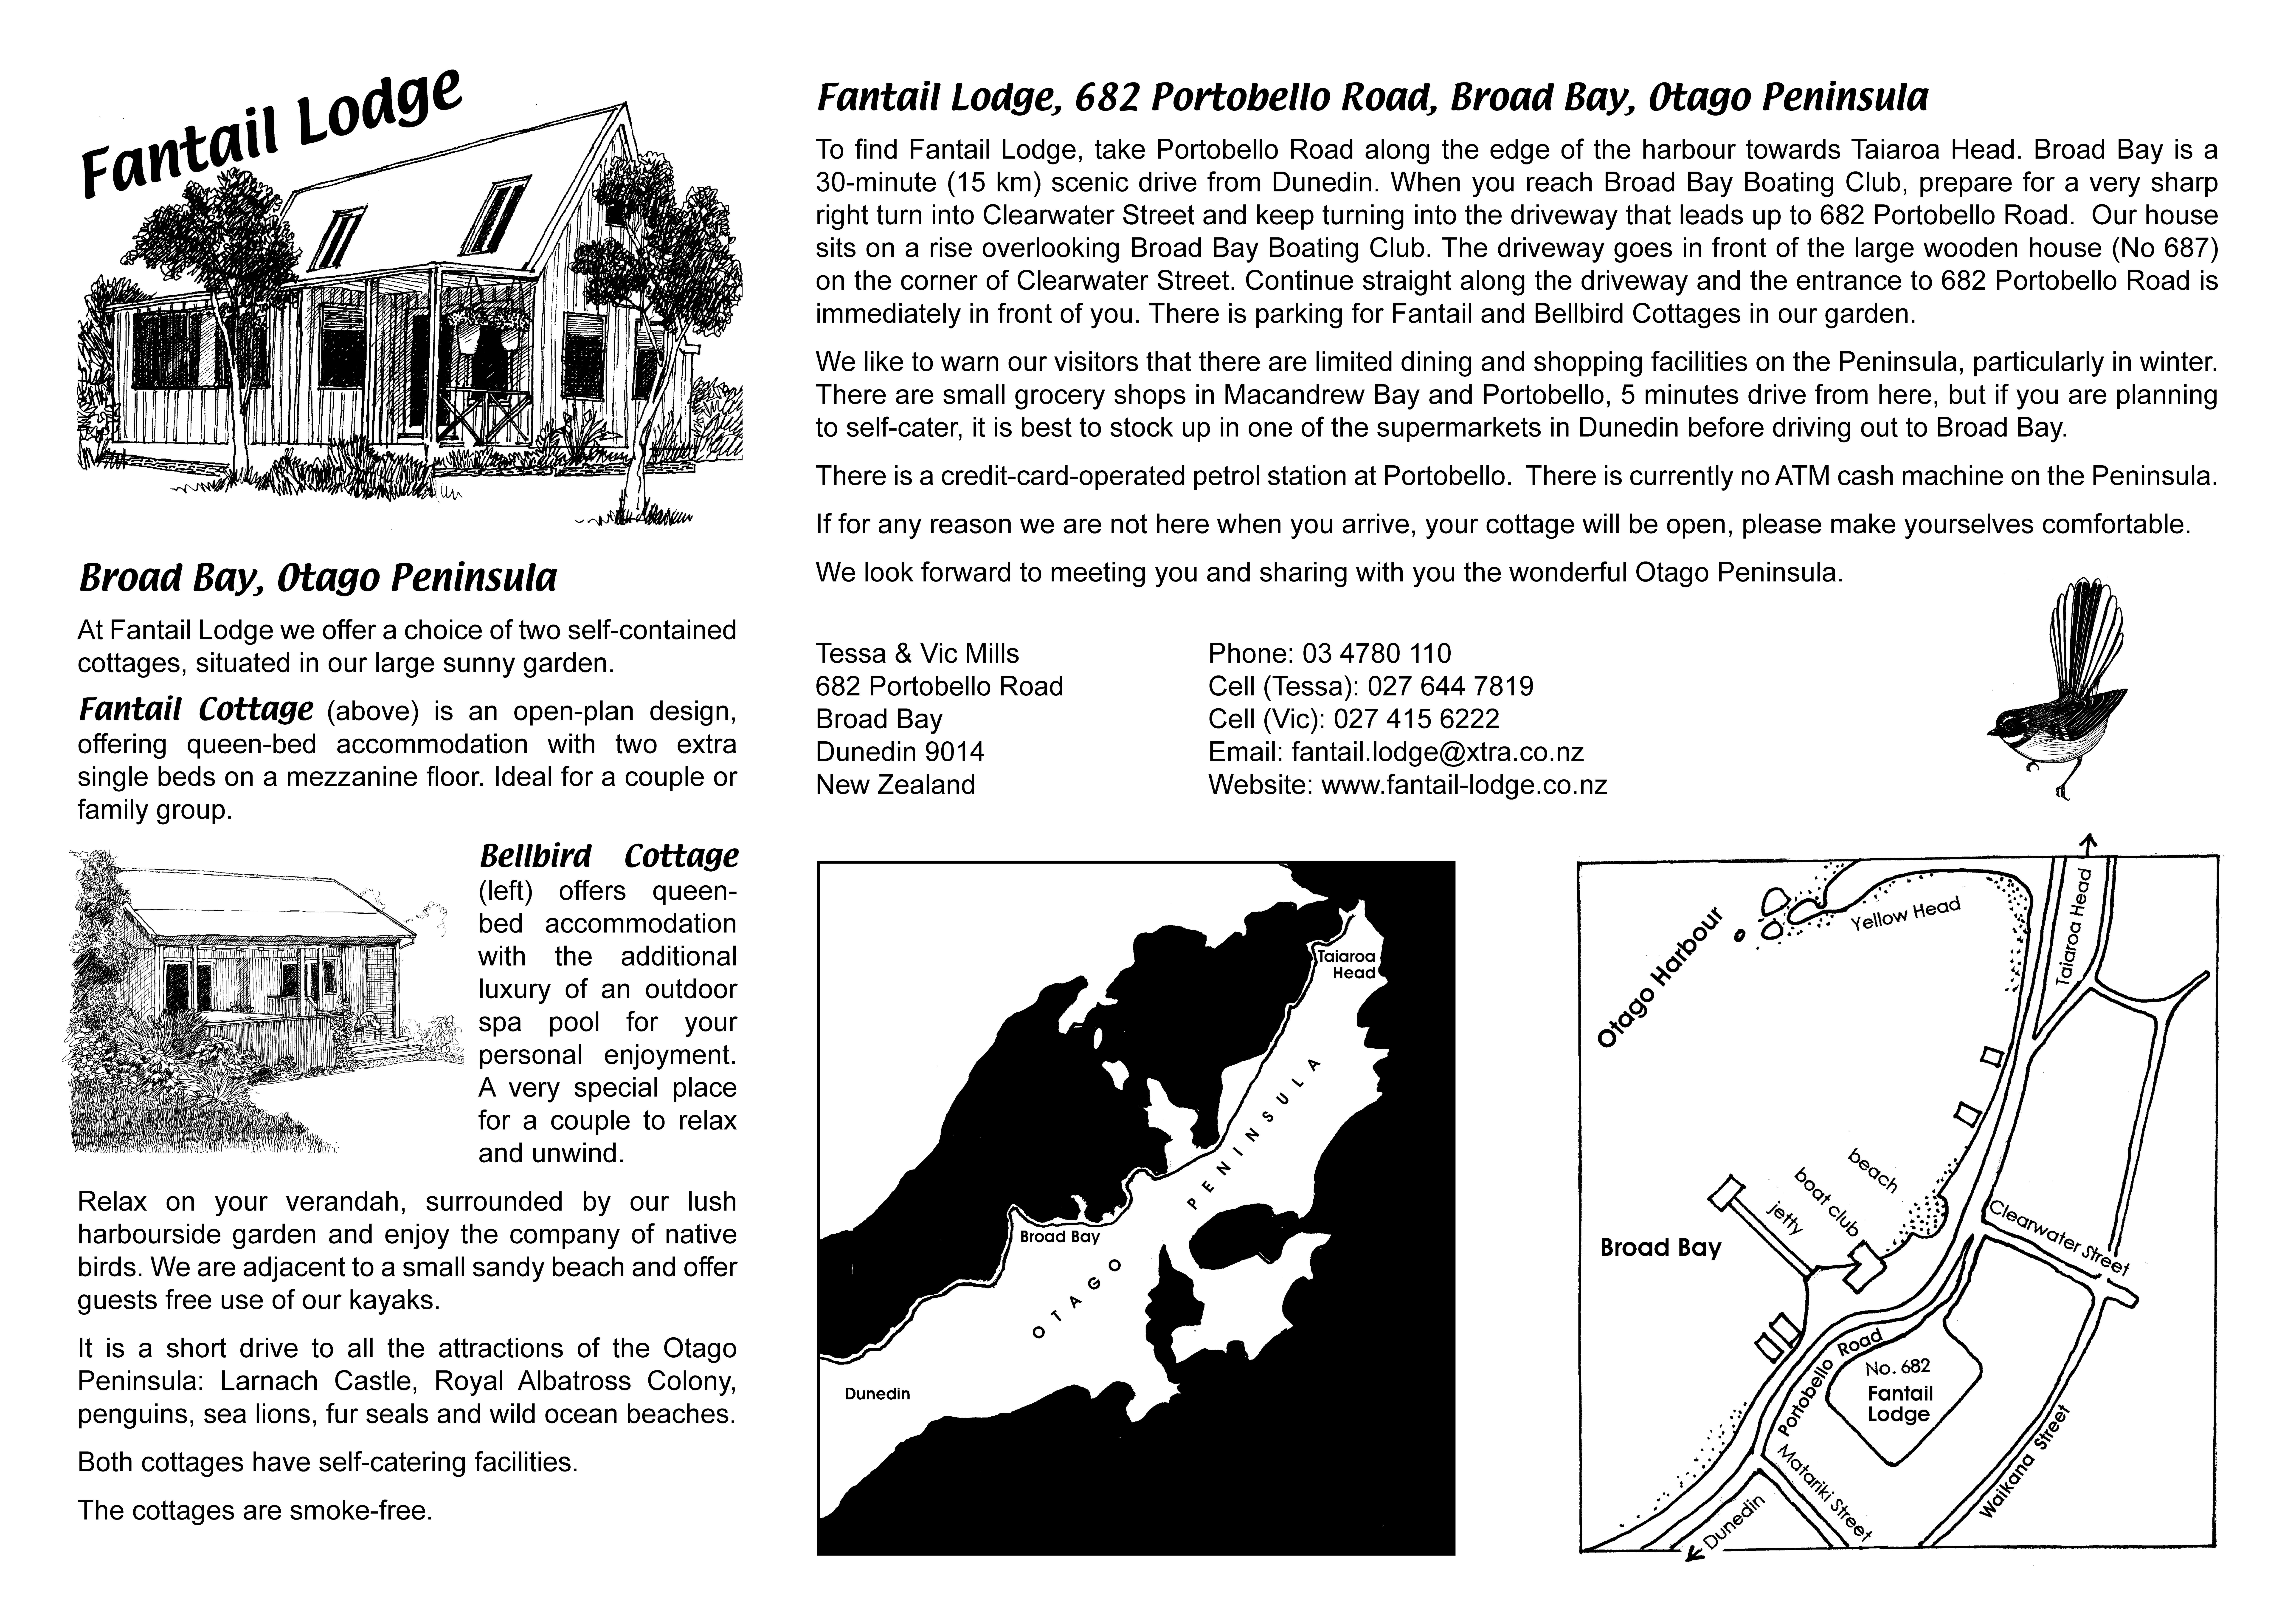 Fantail Lodge directions from Dunedin